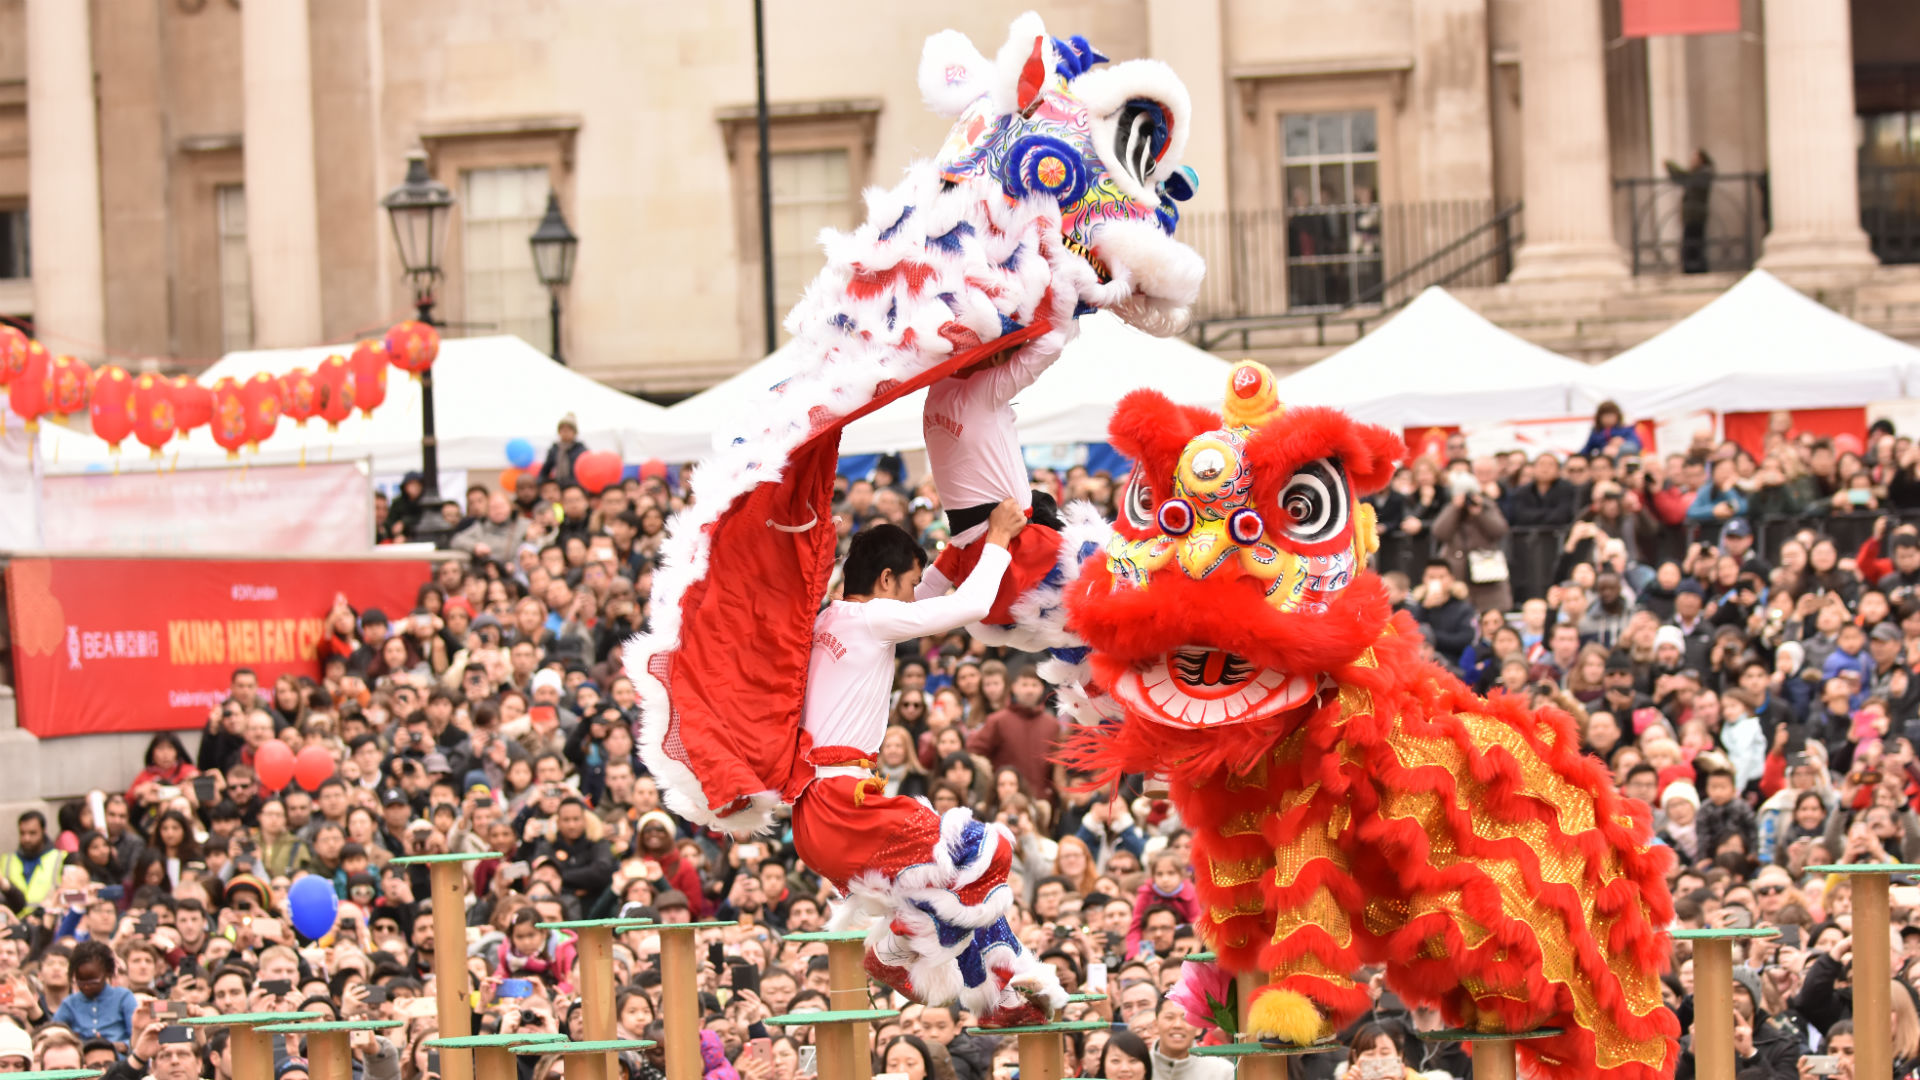 Two people jump from pole to pole during traditional lion dances in Trafalgar Square.